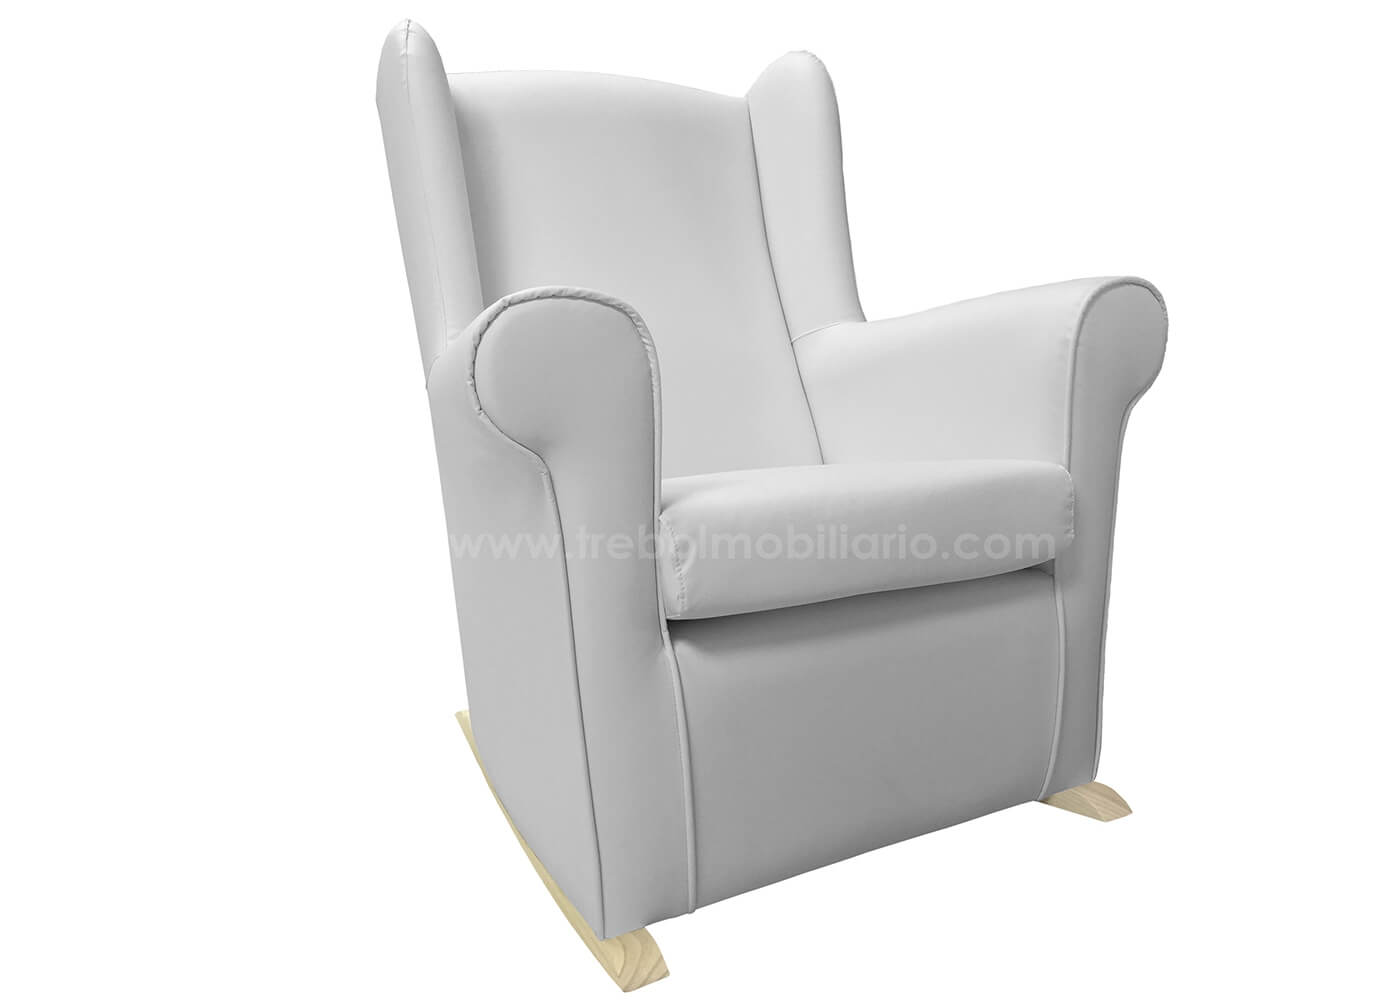 chaise allaitement affordable fauteuil d allaitement. Black Bedroom Furniture Sets. Home Design Ideas